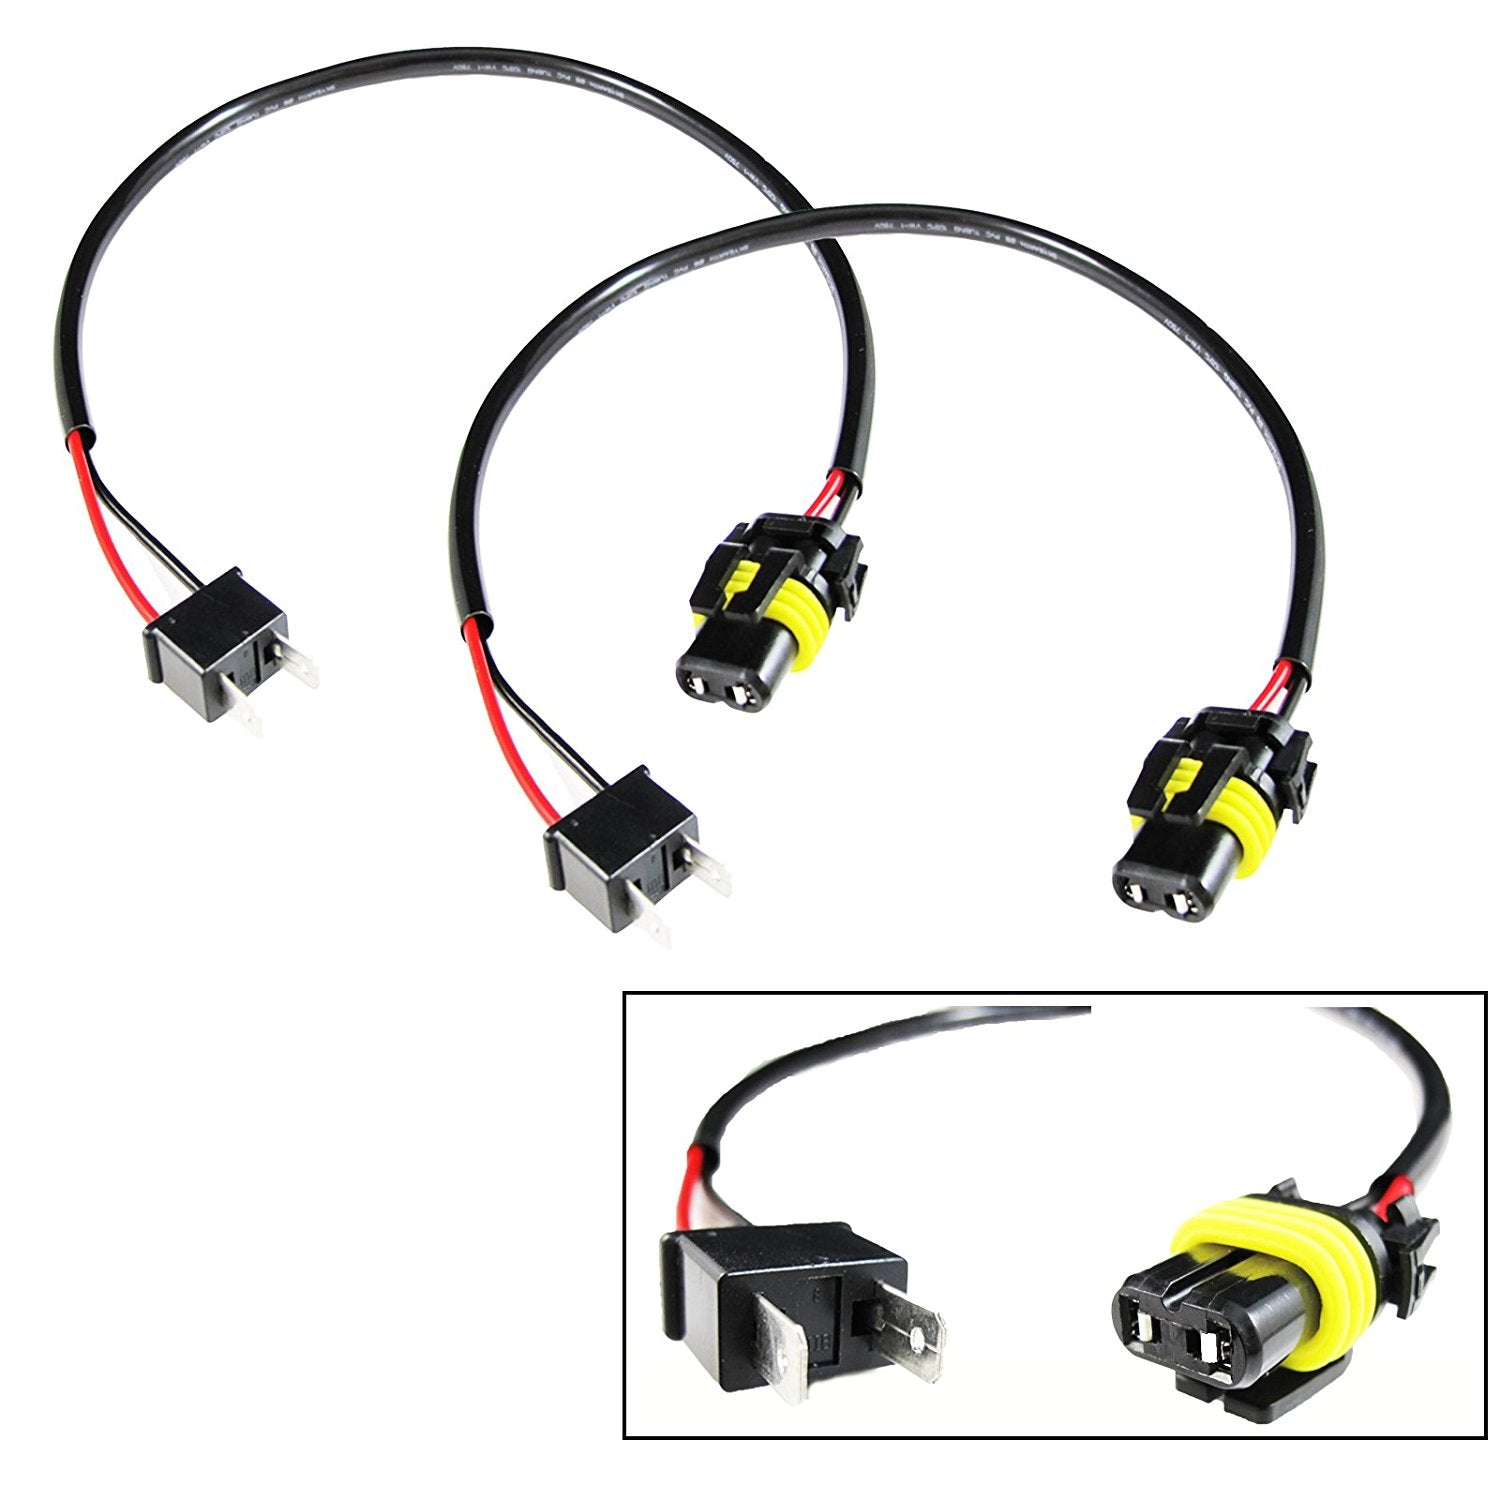 2x H7 Pigtail Wire Wiring Harness Cable Adapter for HID